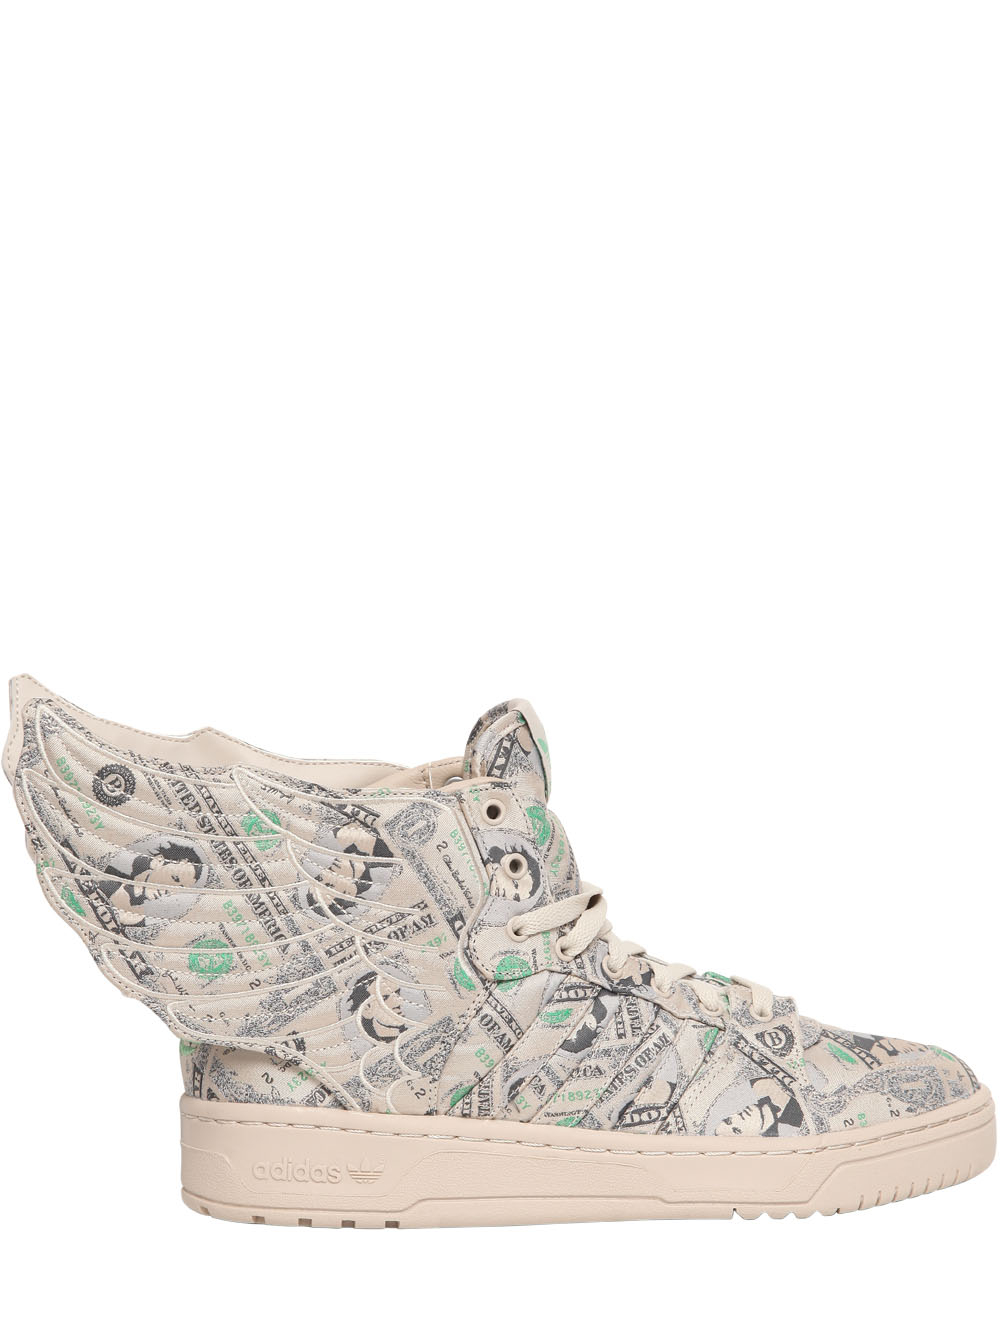 best loved 99c52 6d9fb Jeremy Scott for adidas 10th Anniversary Wings High Top Sneakers in ...